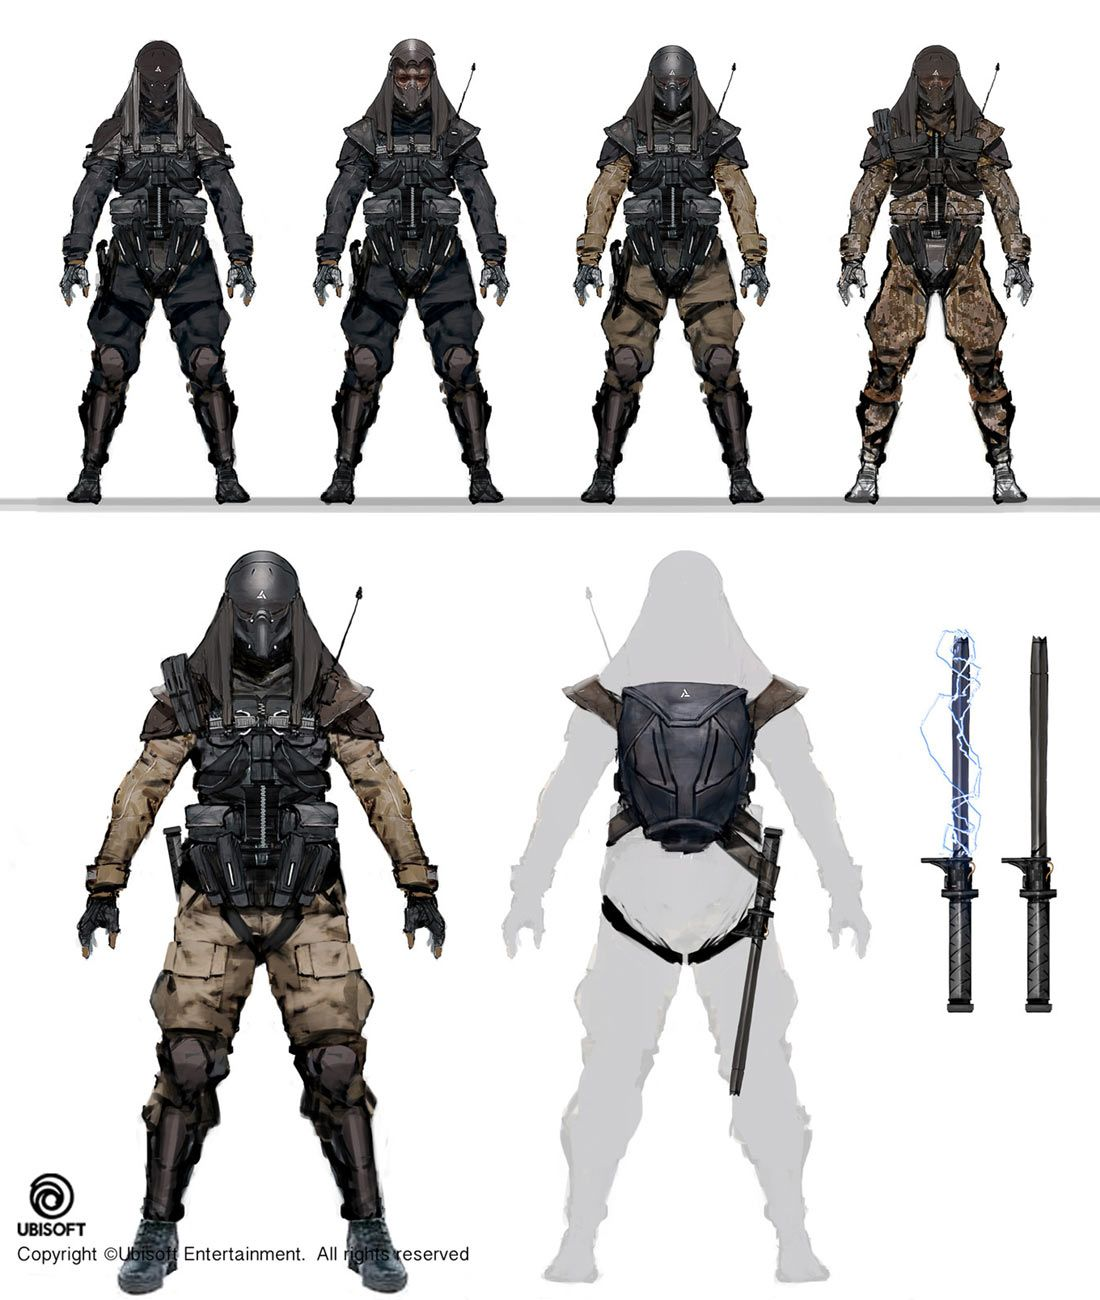 Abstergo Soldier Concepts Concept Art Characters Star Wars